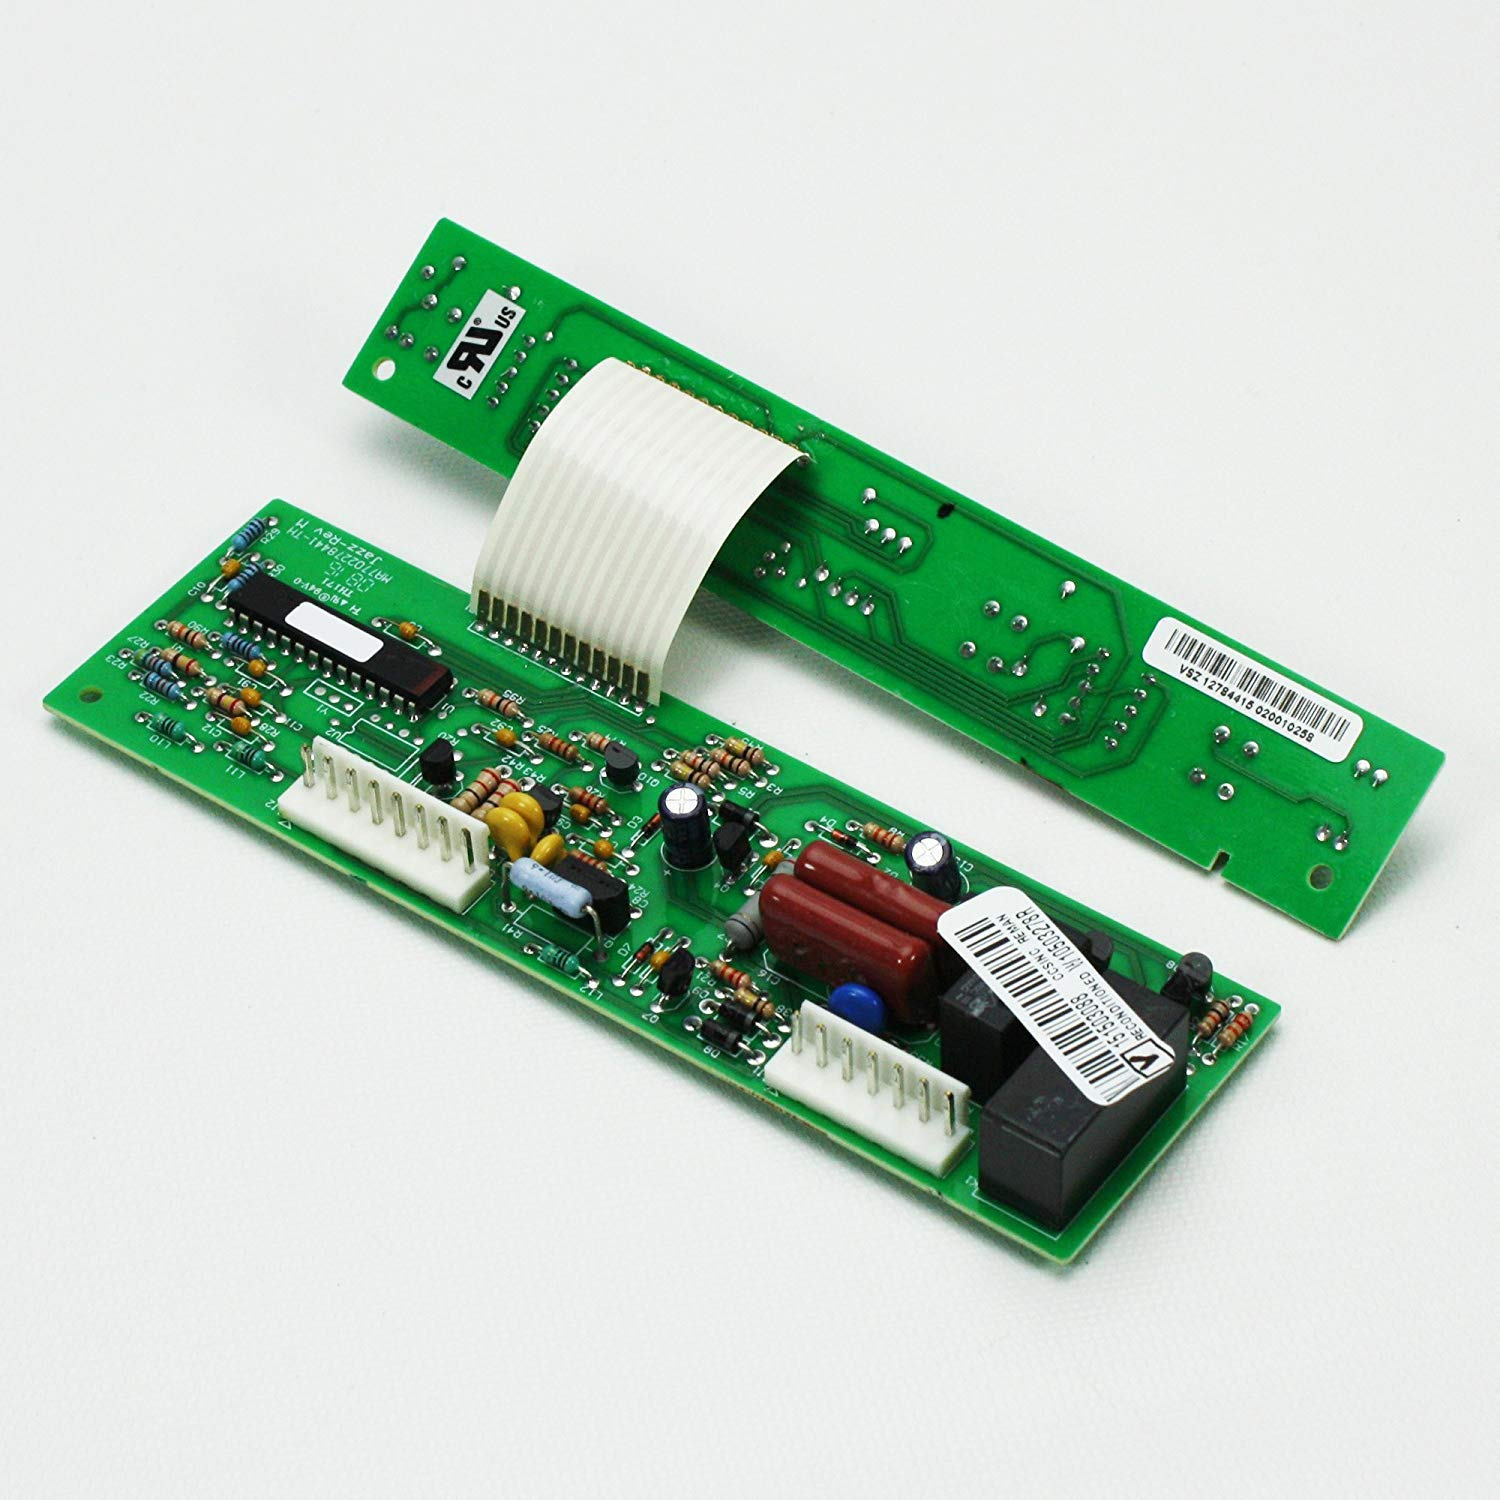 Edgewater Parts W10503278 Brand New Control Board Compatible With Whirlpool, Maytag Refrigerator